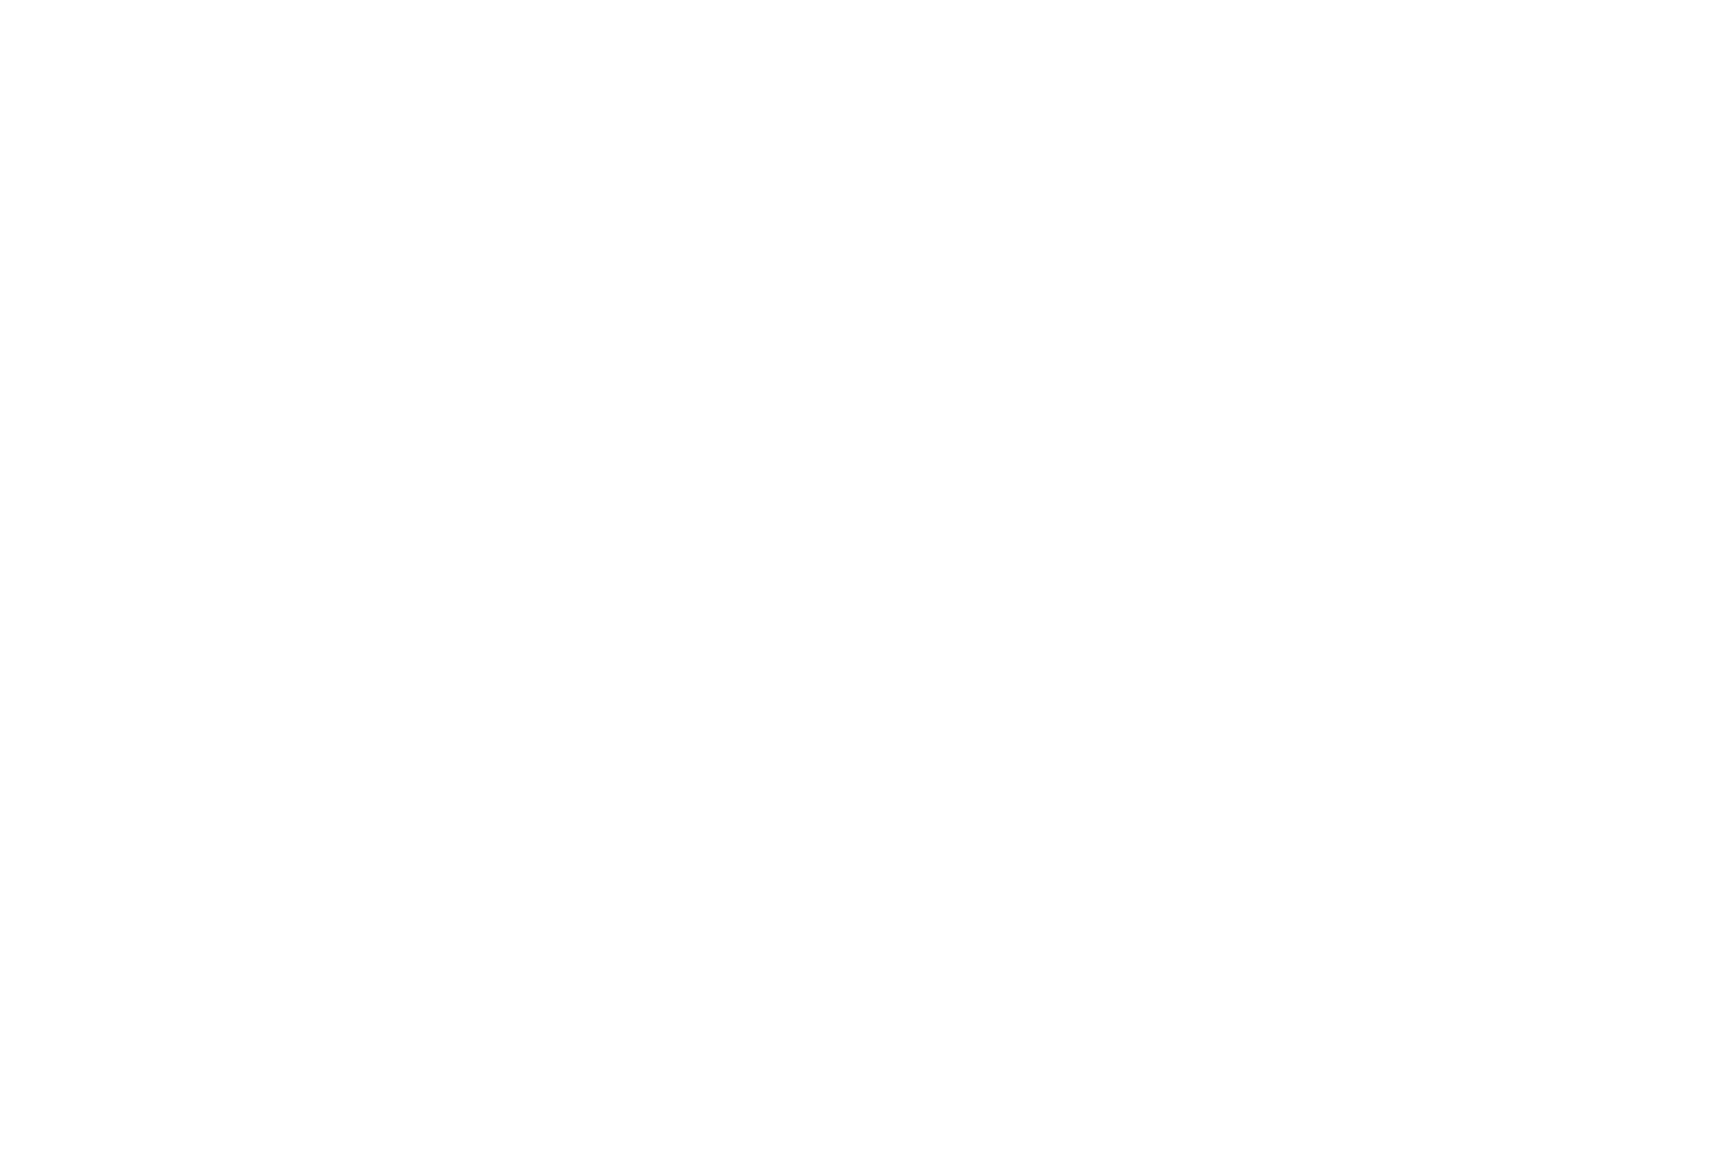 BEST FEATURE FILM - California Music Video  Film Awards - 2019 (bw).png